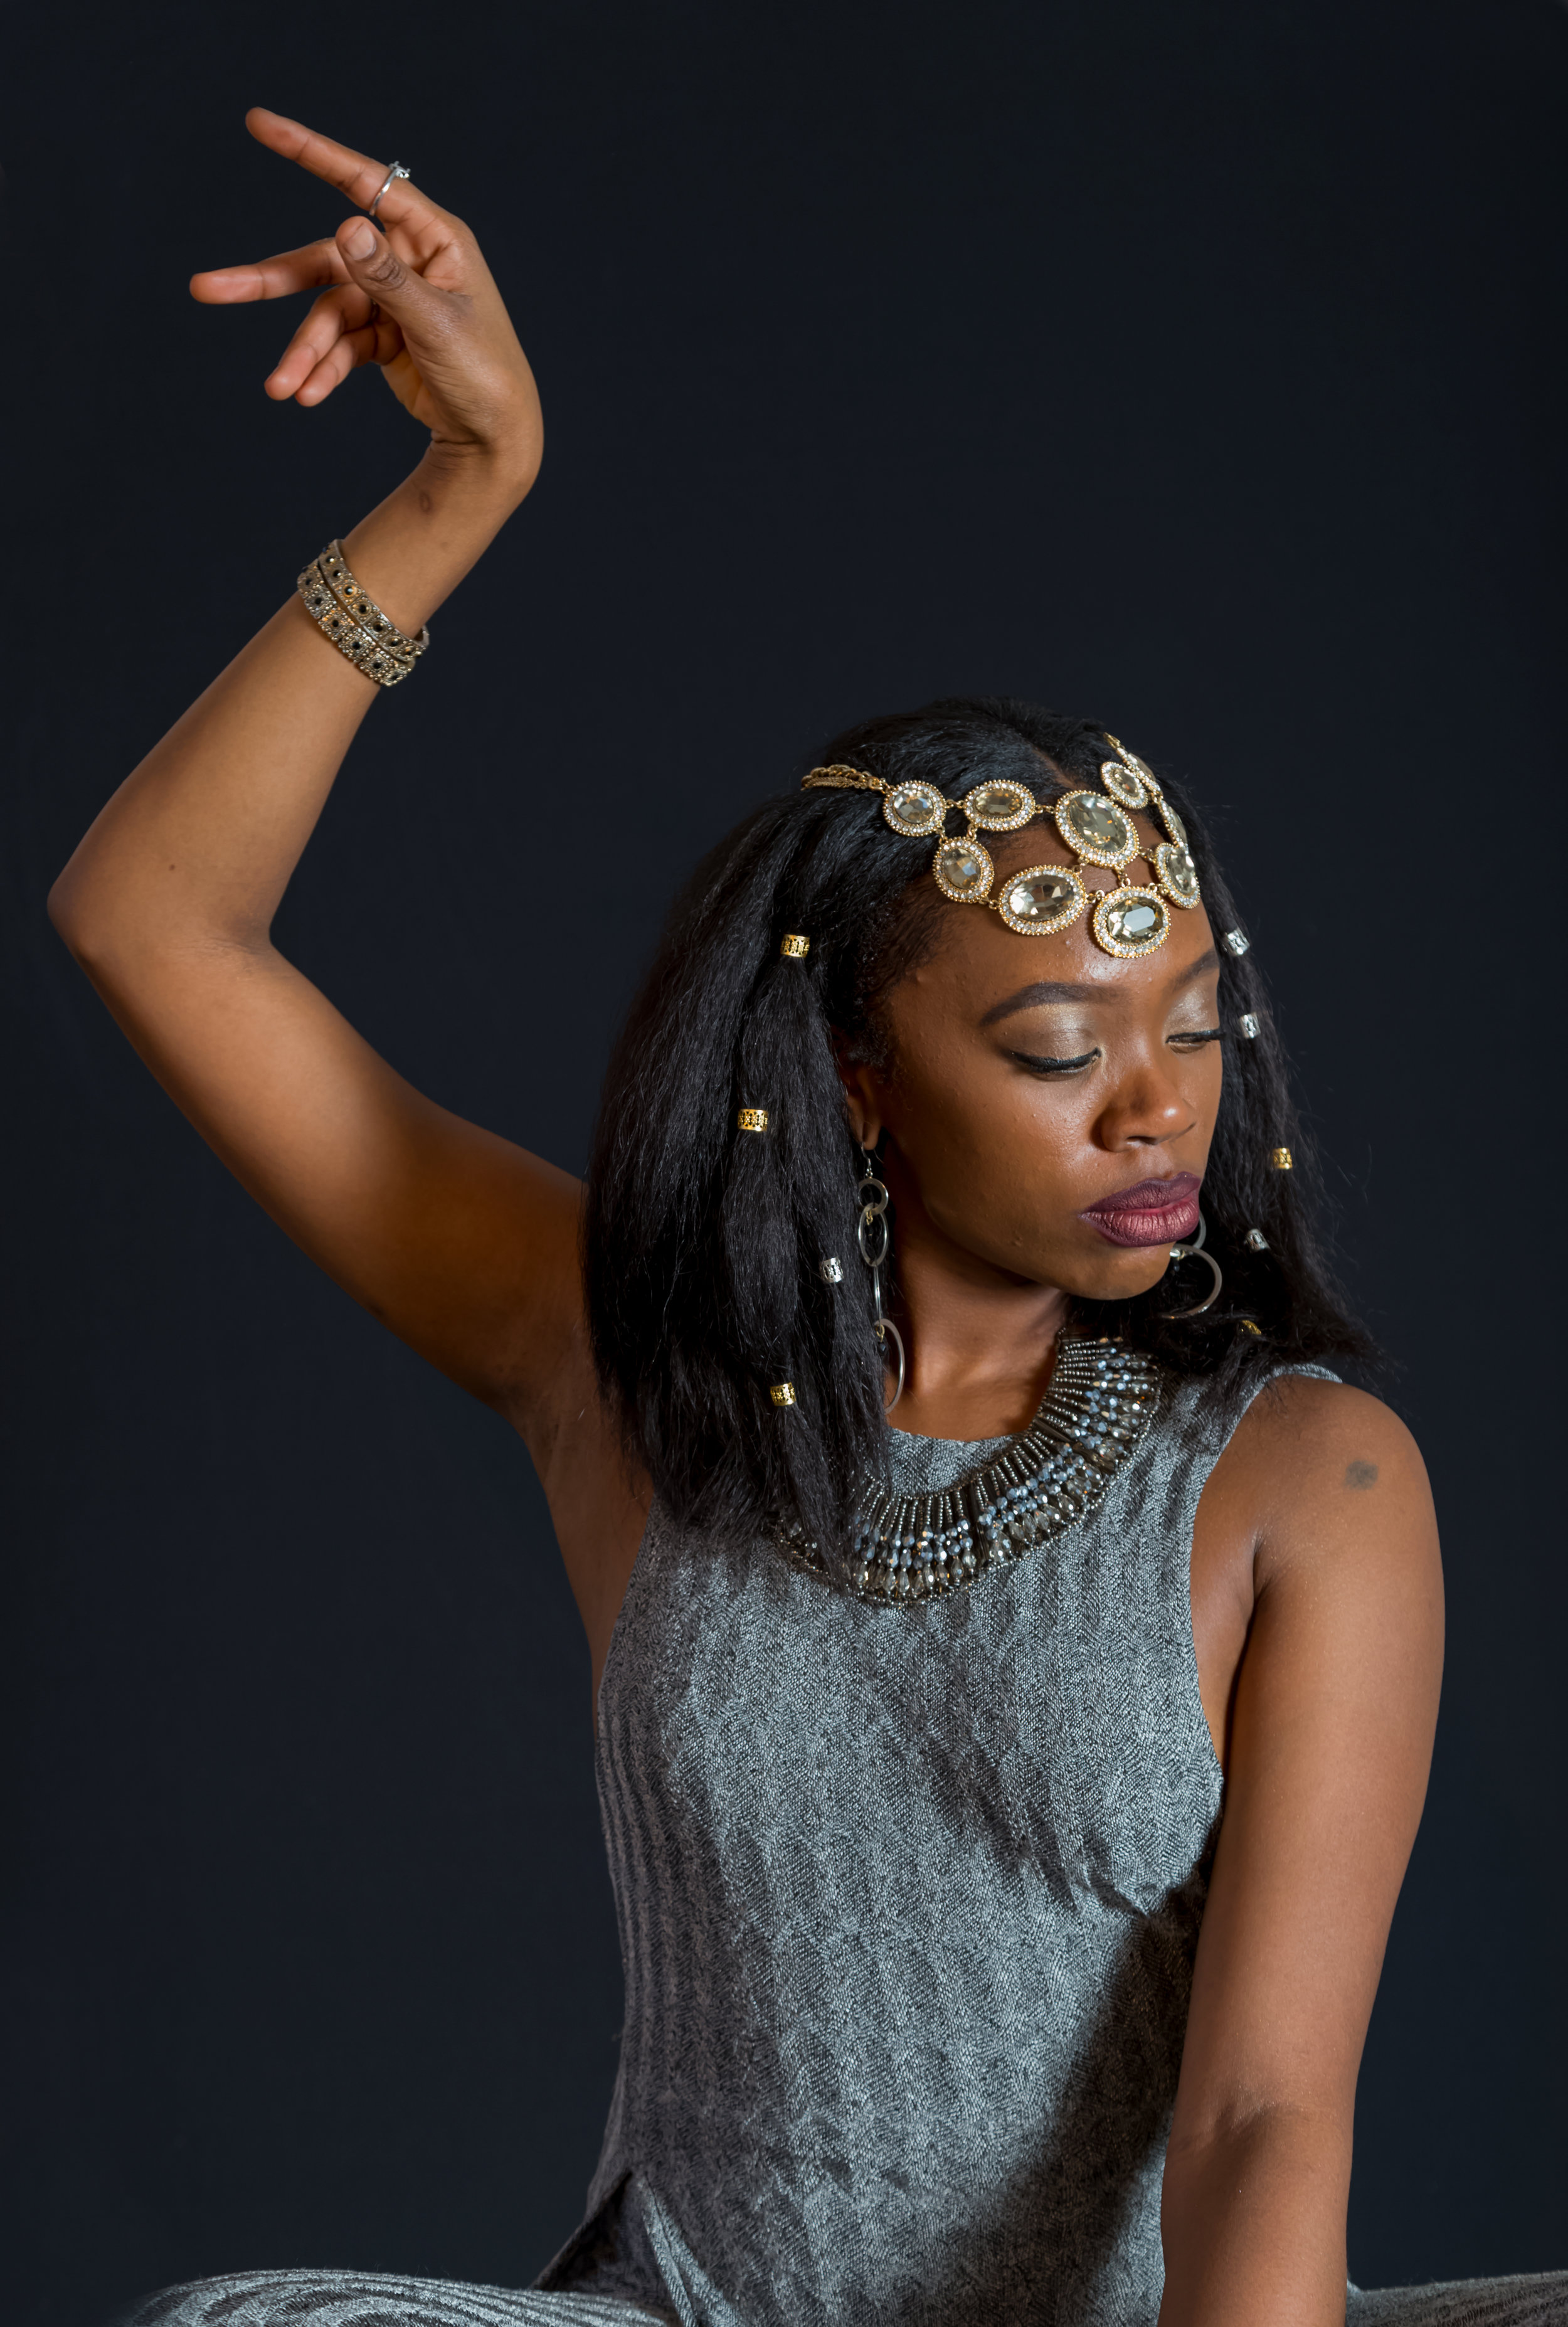 Akilah A. Walker as 'Cleopatra' in 'Antony and Cleopatra' by William Shakespeare